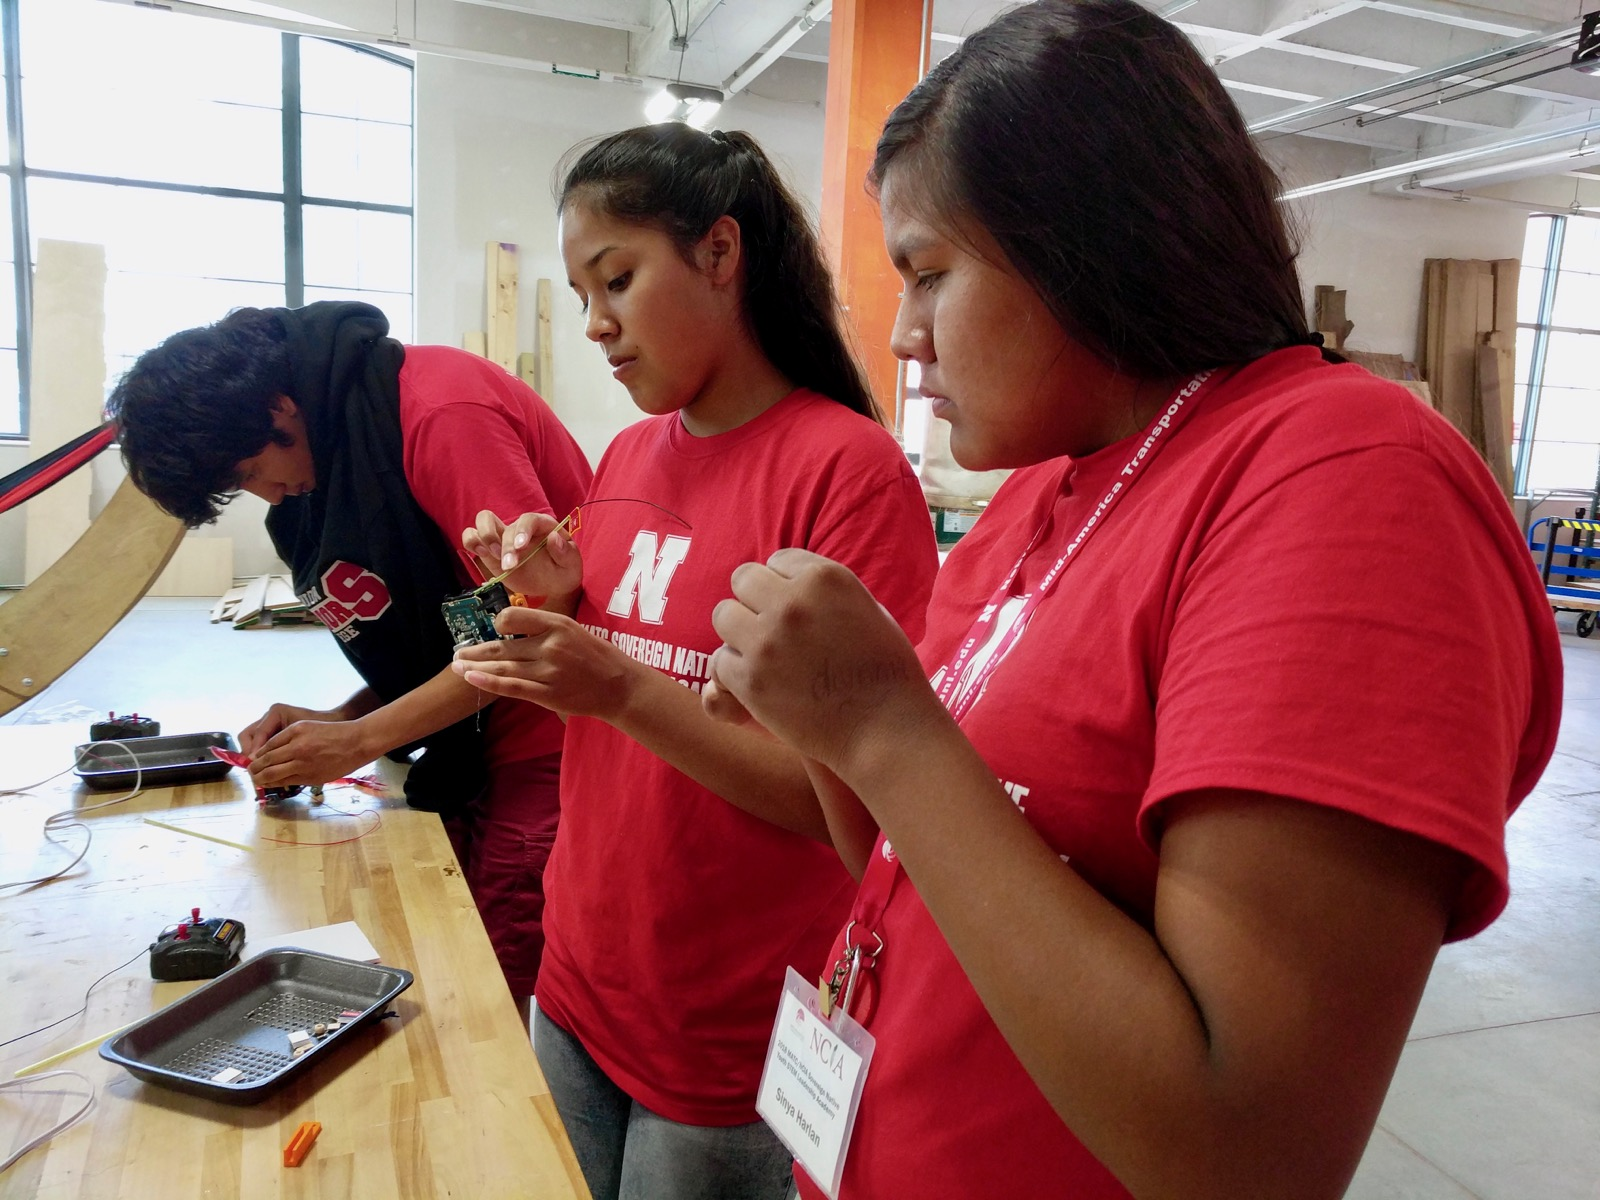 Native students learn about science in 'Sovereign' summer camp